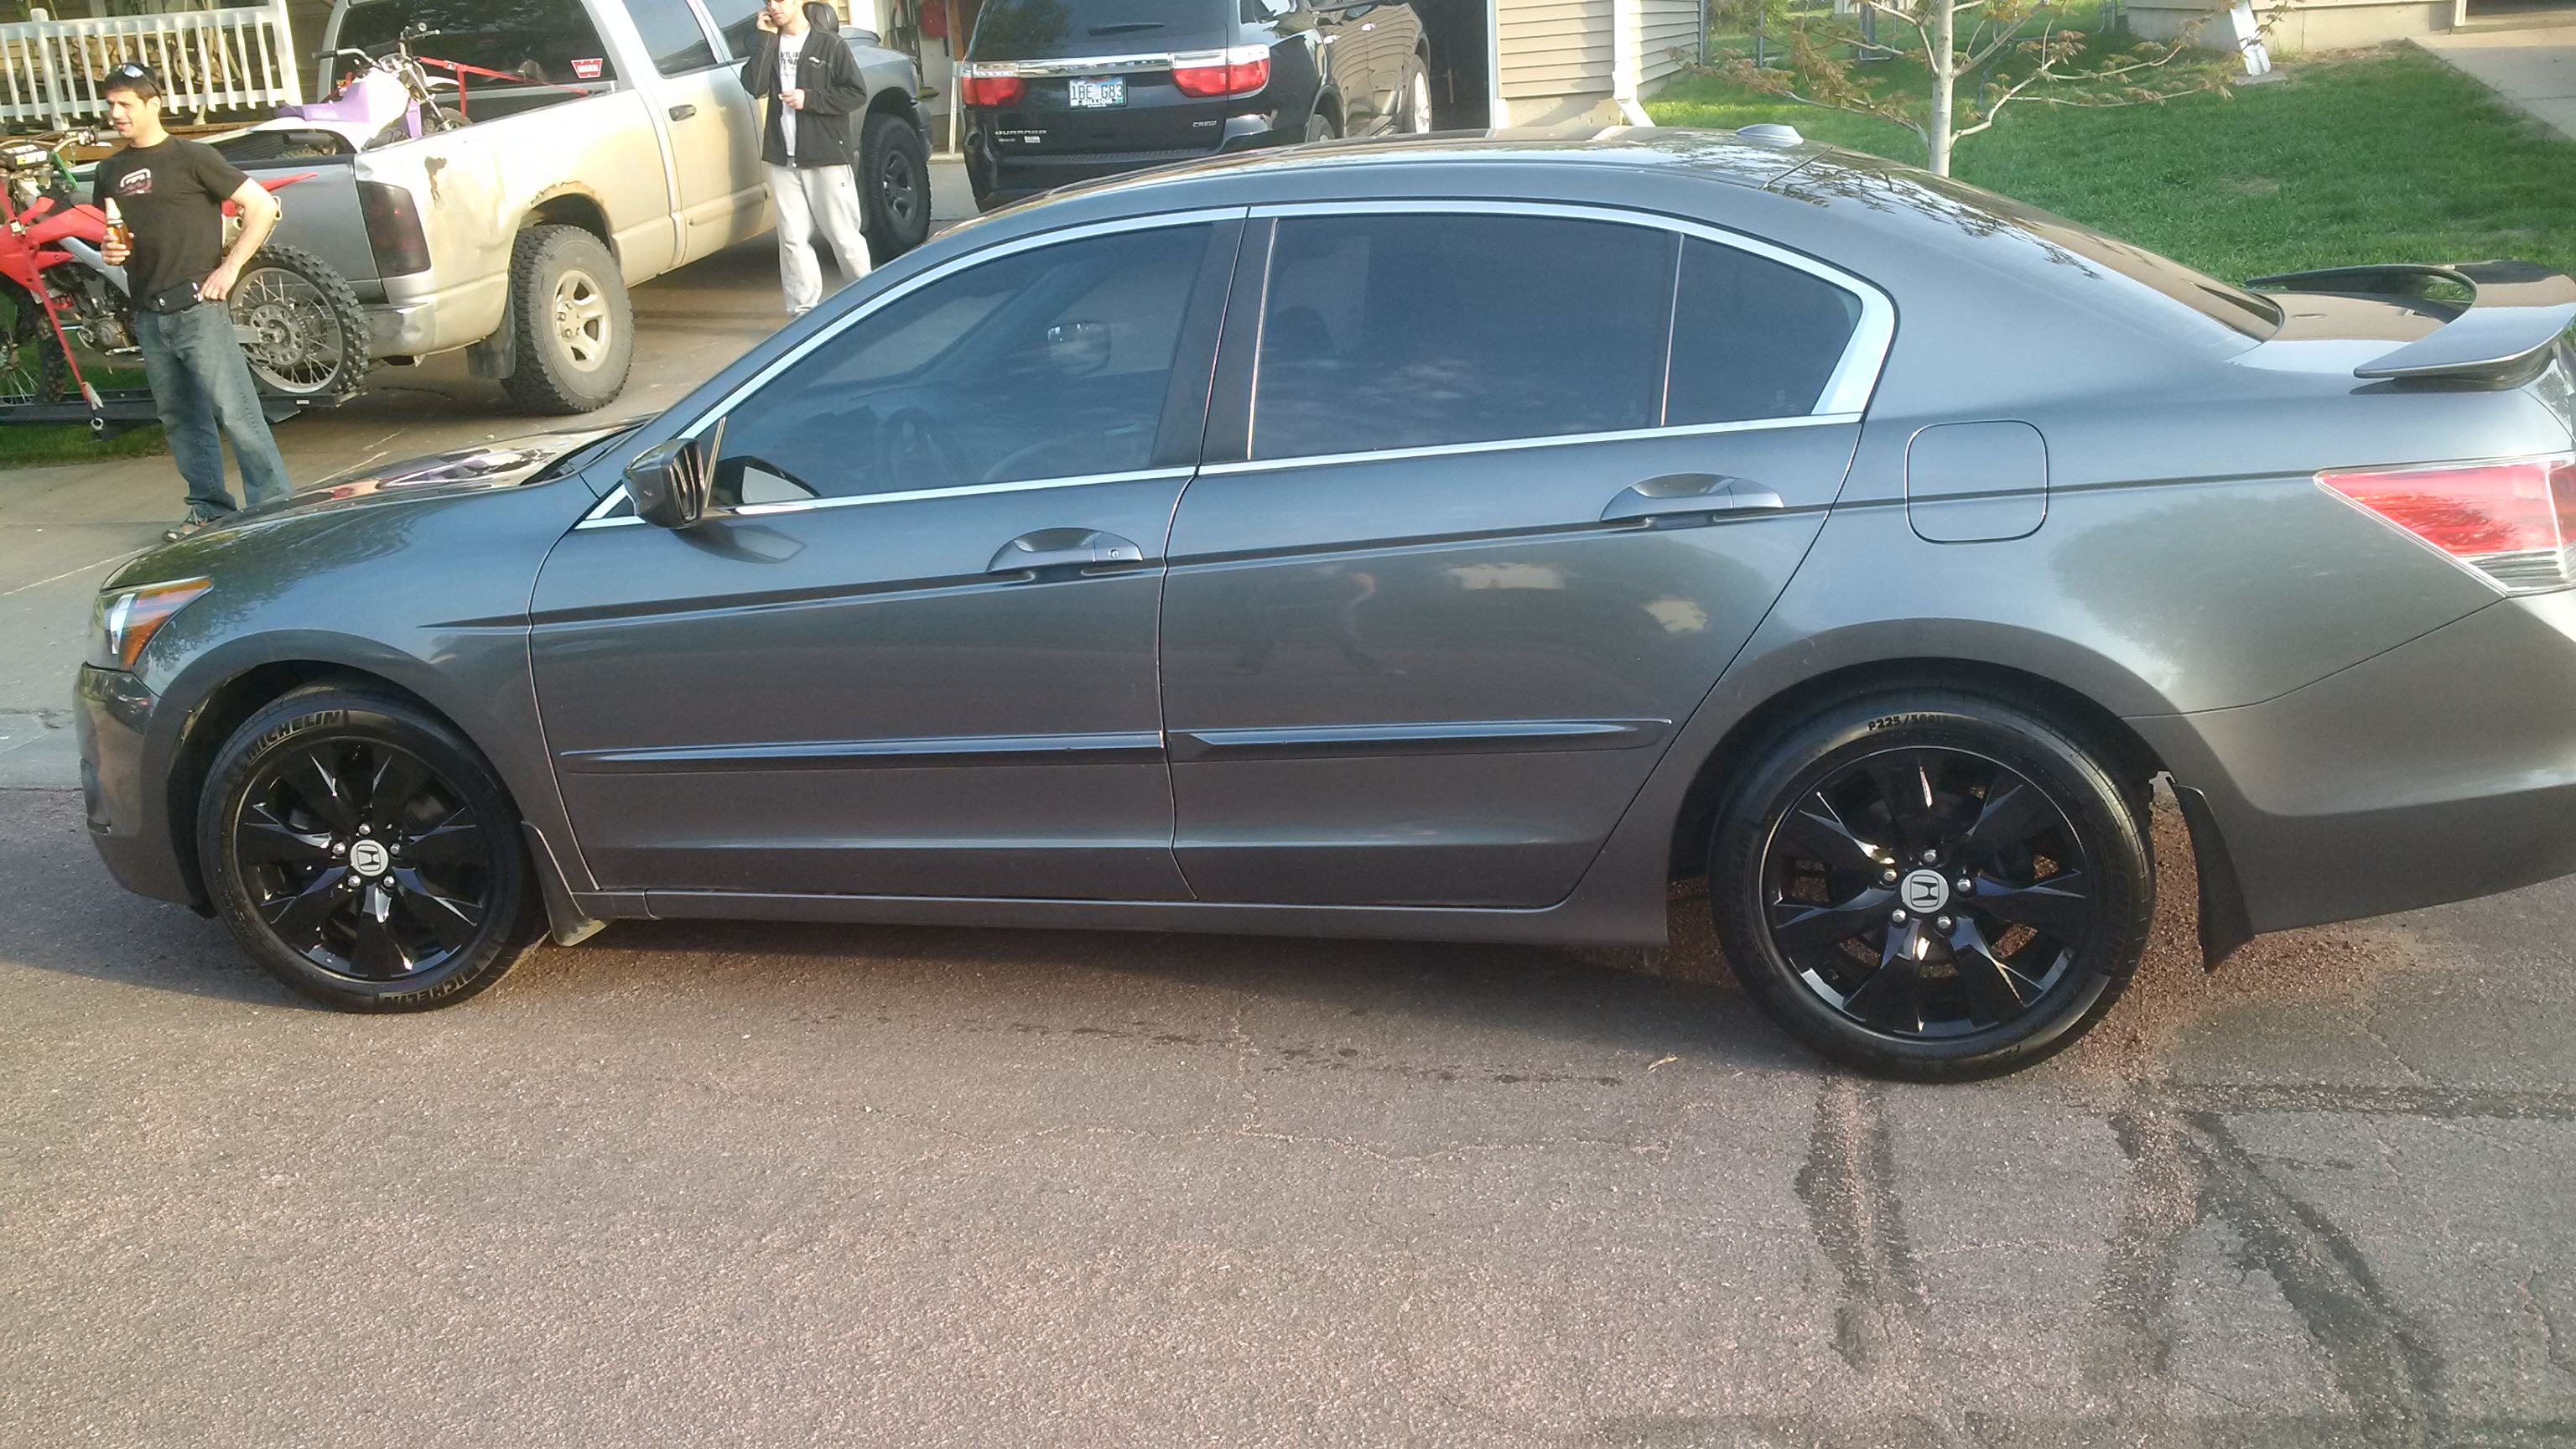 2009 Honda Accord Coupe Black Rims